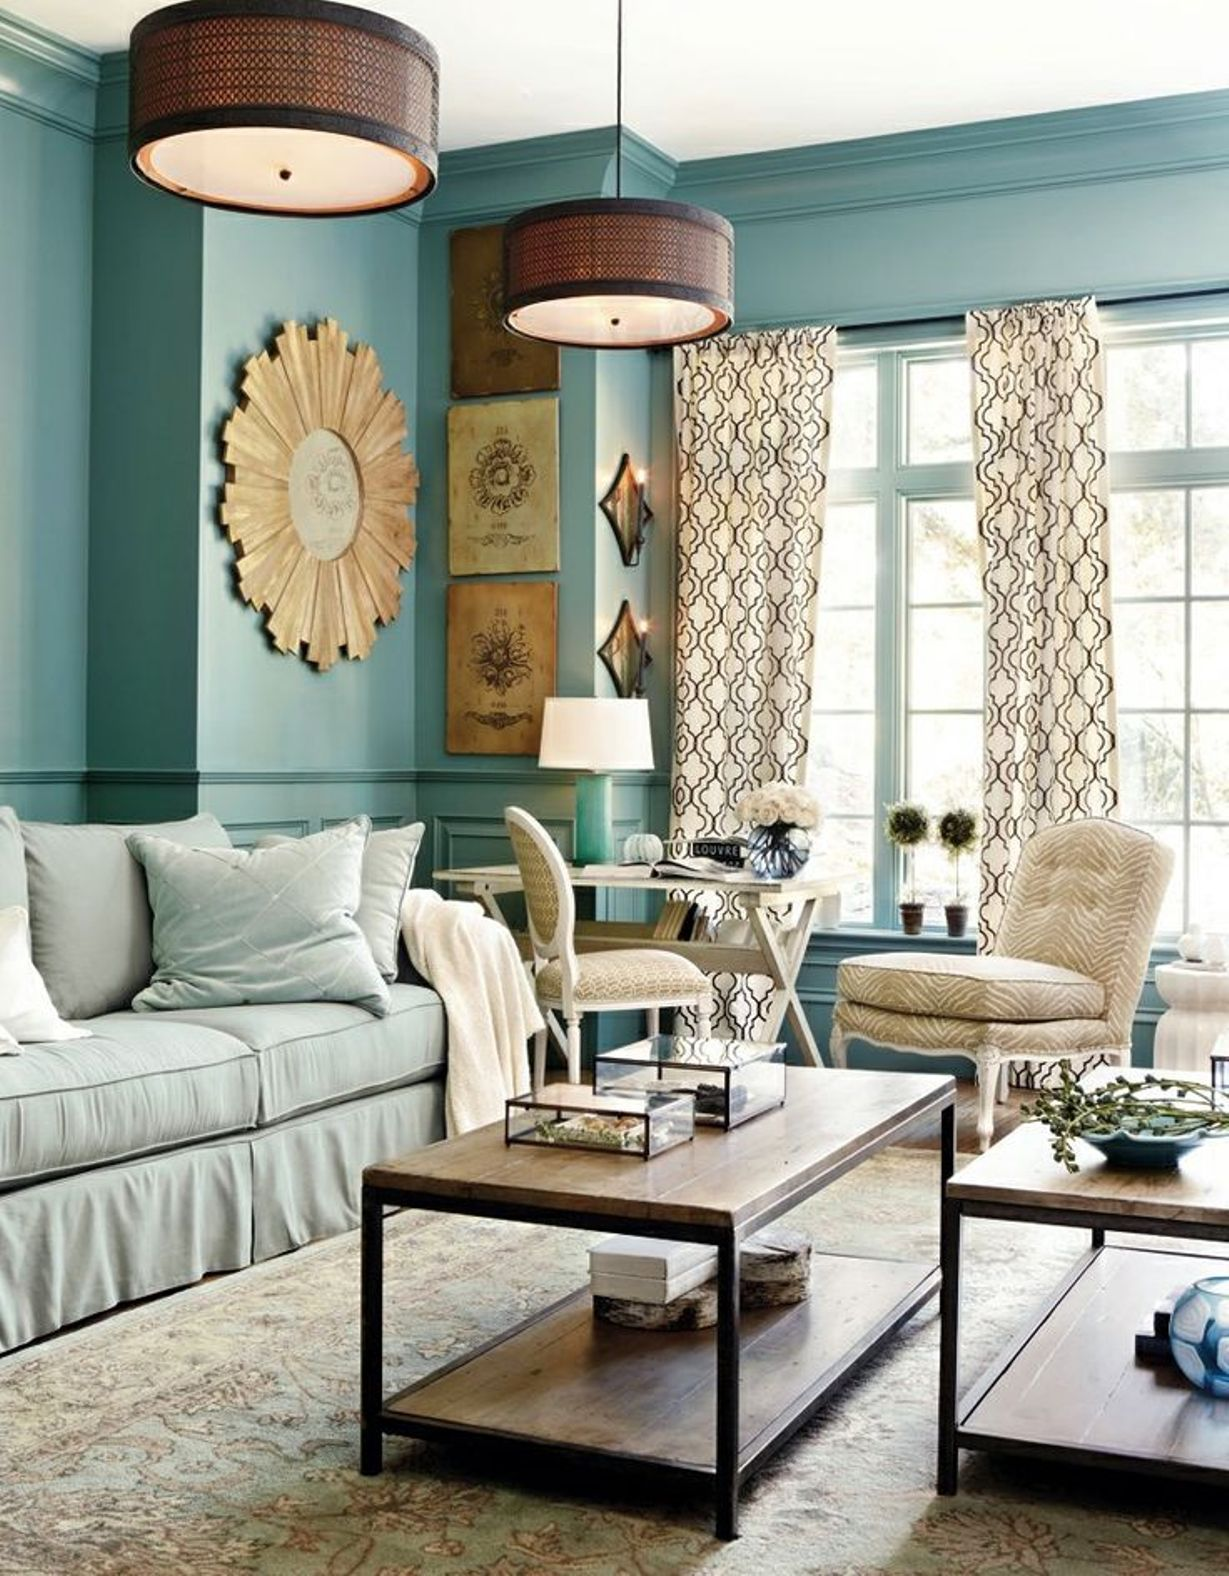 Pin On Home Decor #new #living #room #paint #colors